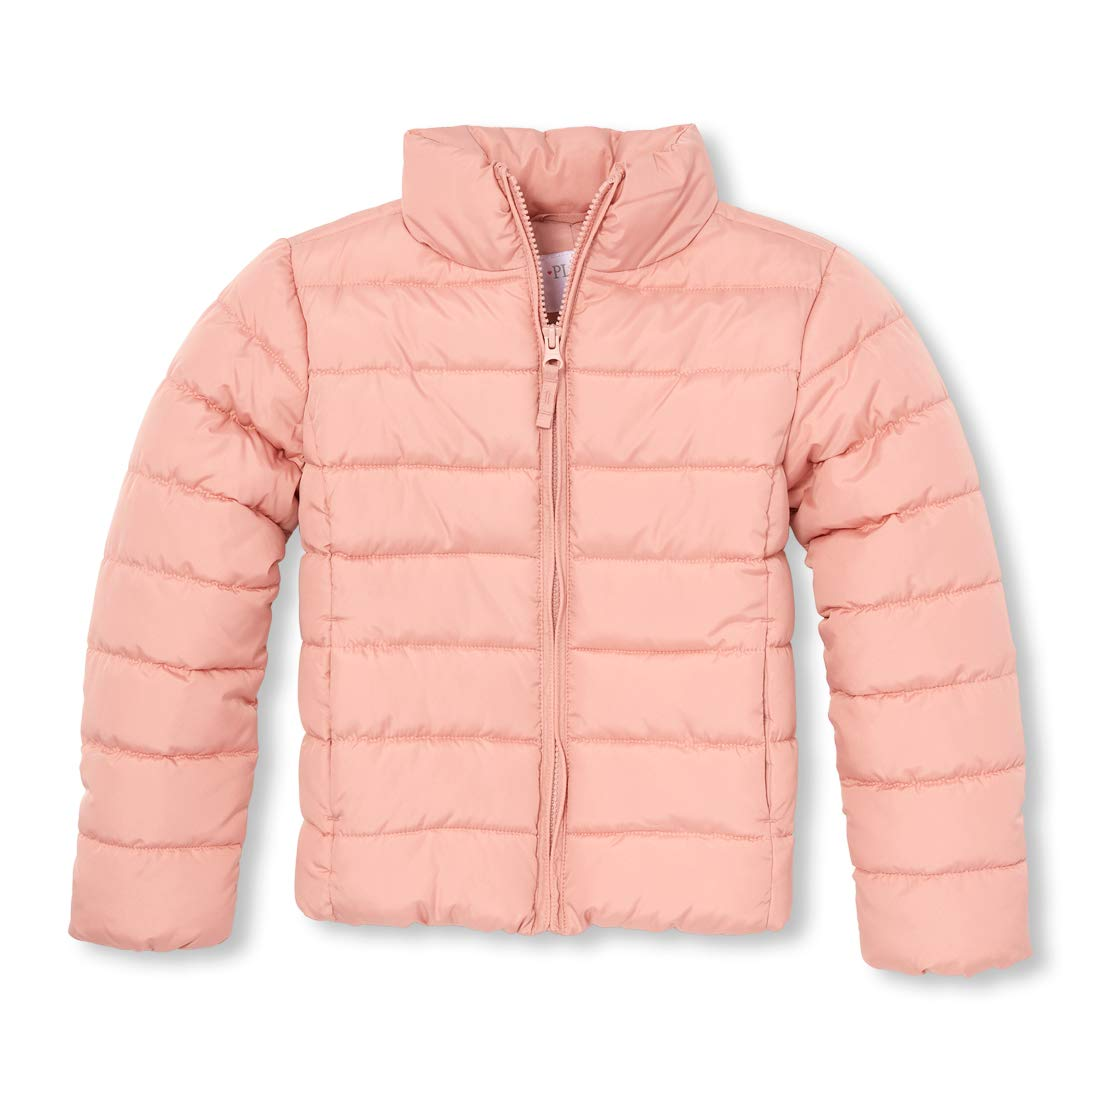 a96b03bff Amazon.com  The Children s Place Girls  Puffer Jacket  Clothing